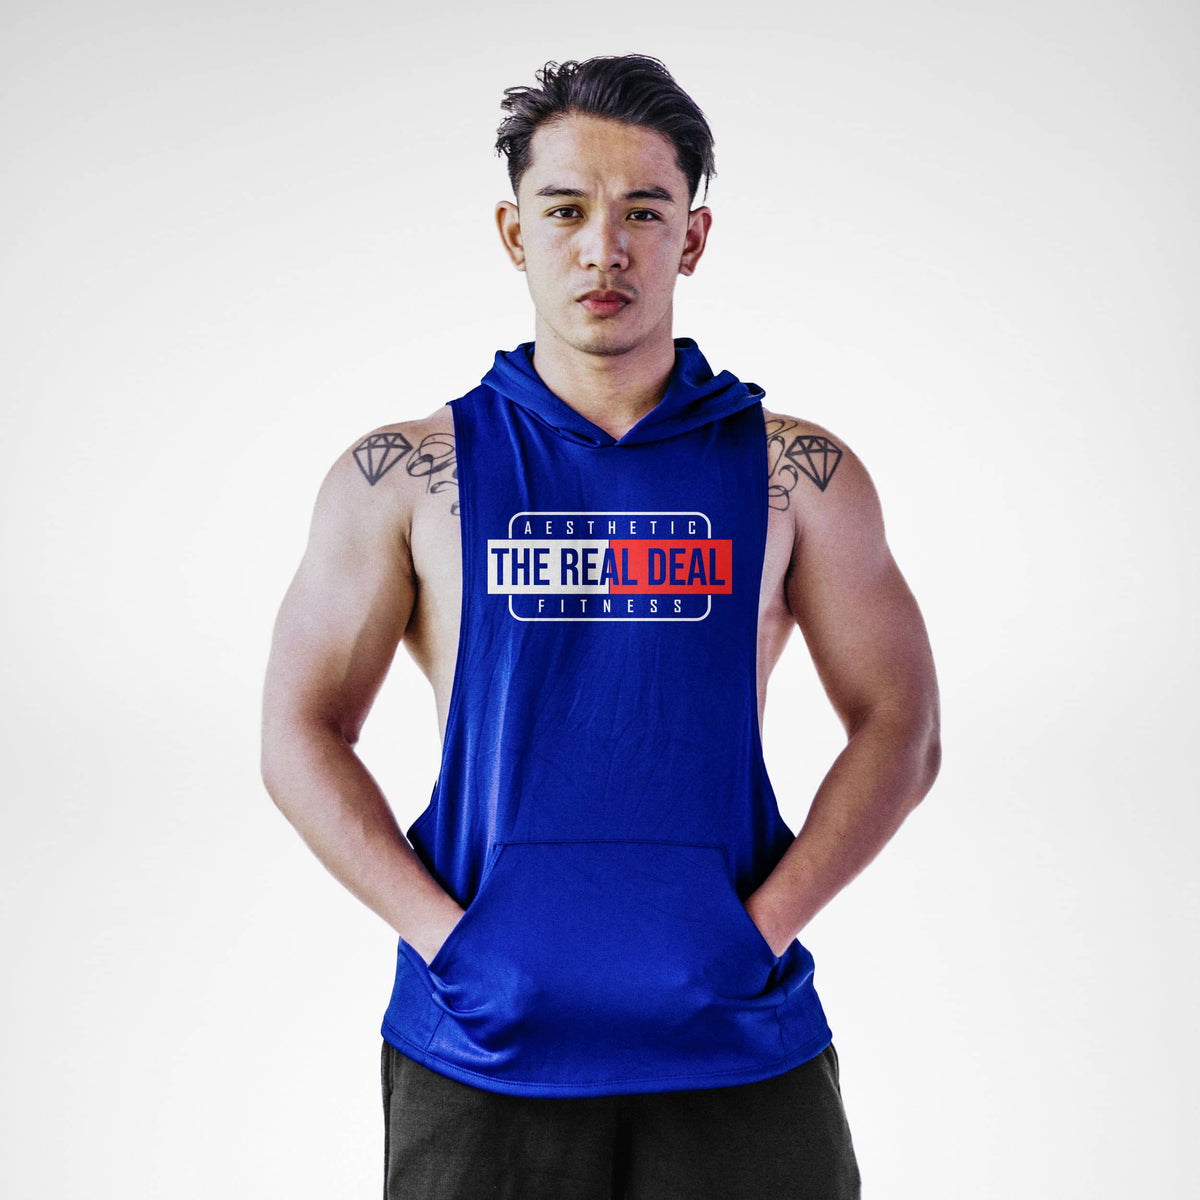 The Real Deal Aesthetic Fitness Sleeveless Hoodie